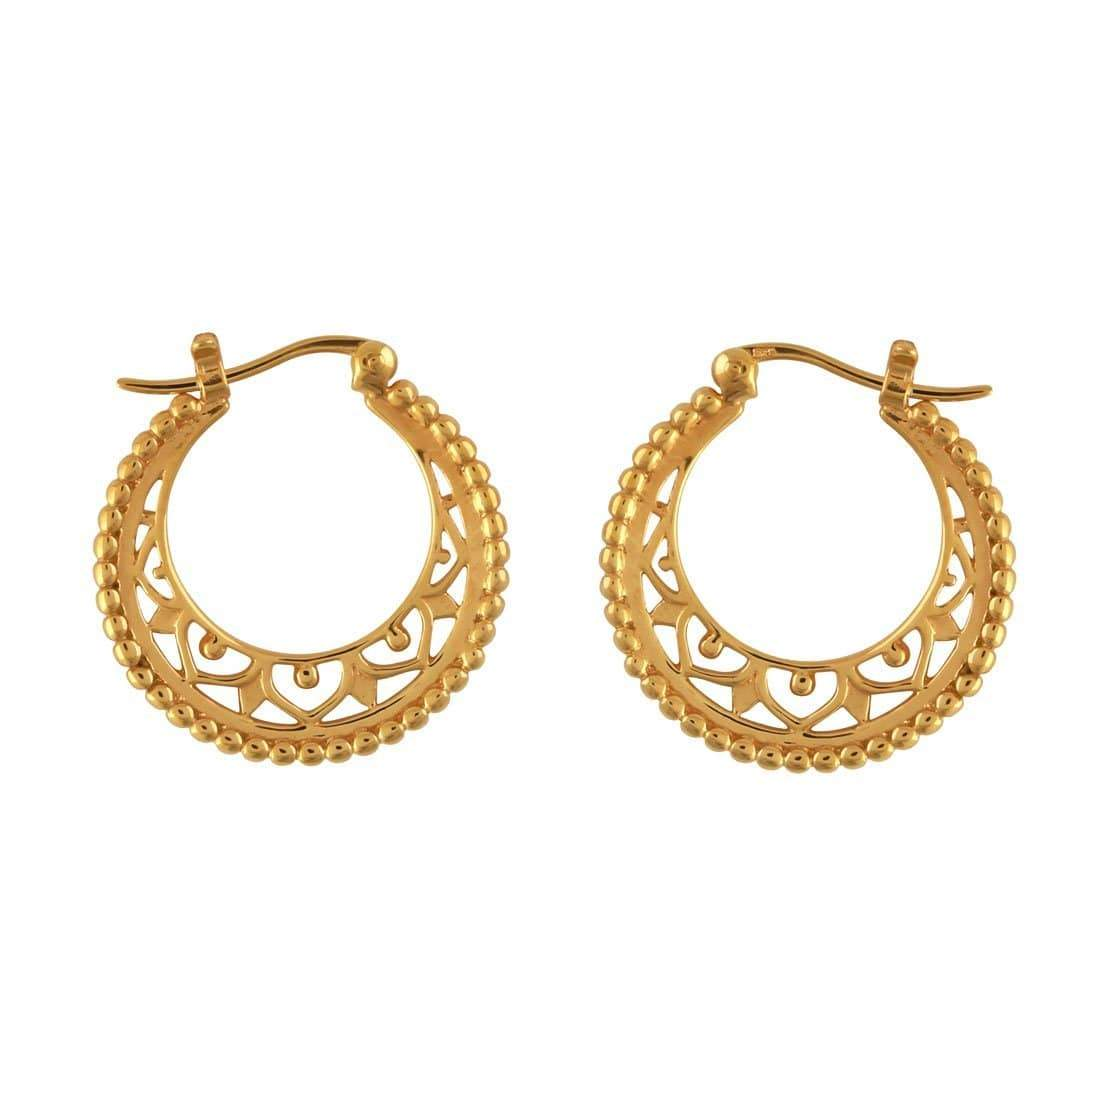 Midsummer Star Earrings Gold Mandala Disc Hoops